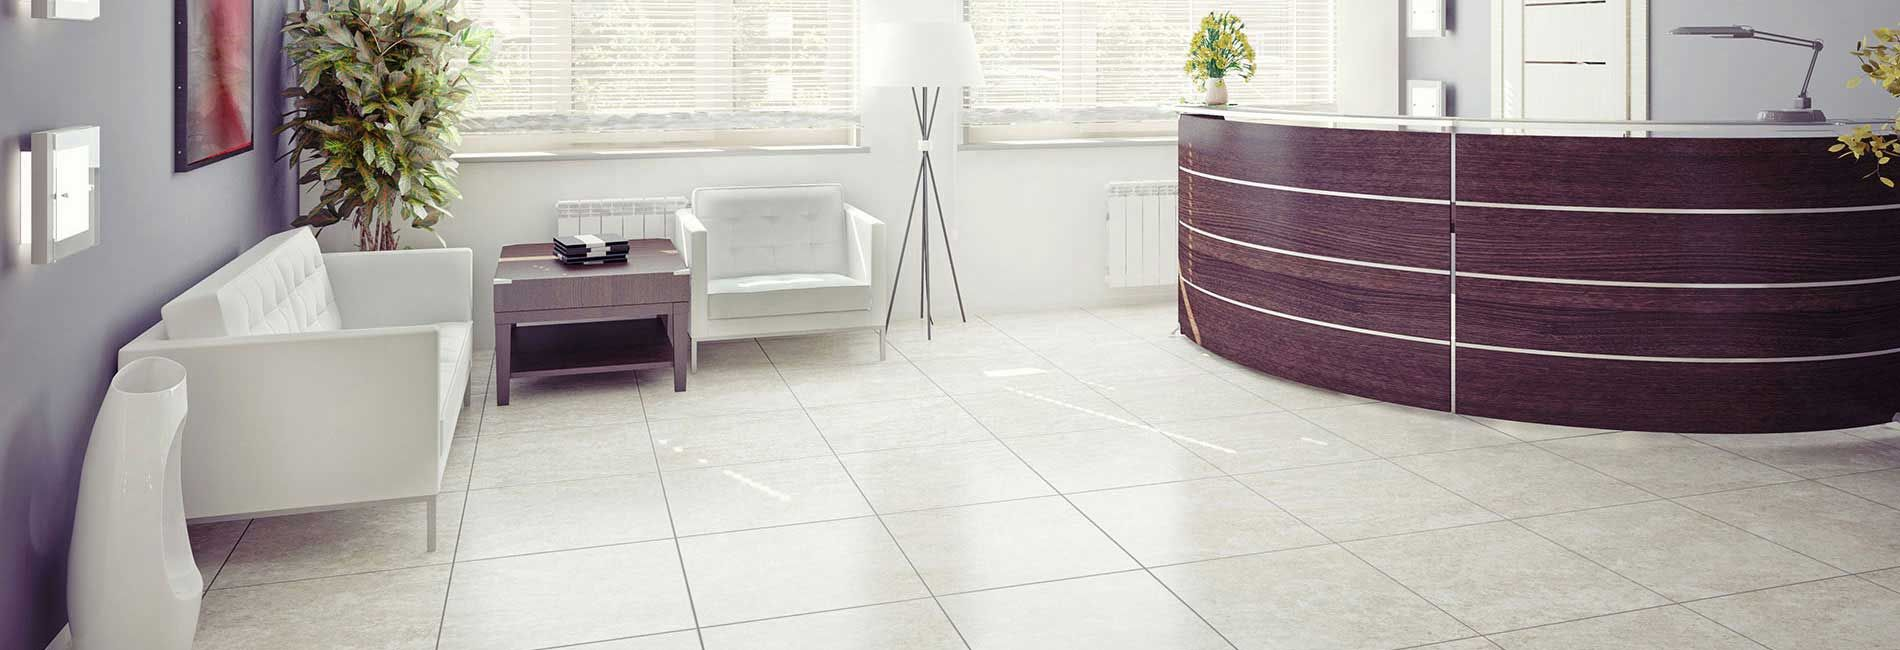 Office Reception with Ceramic Glazed Coloured Floor Tiles | Tiles ...